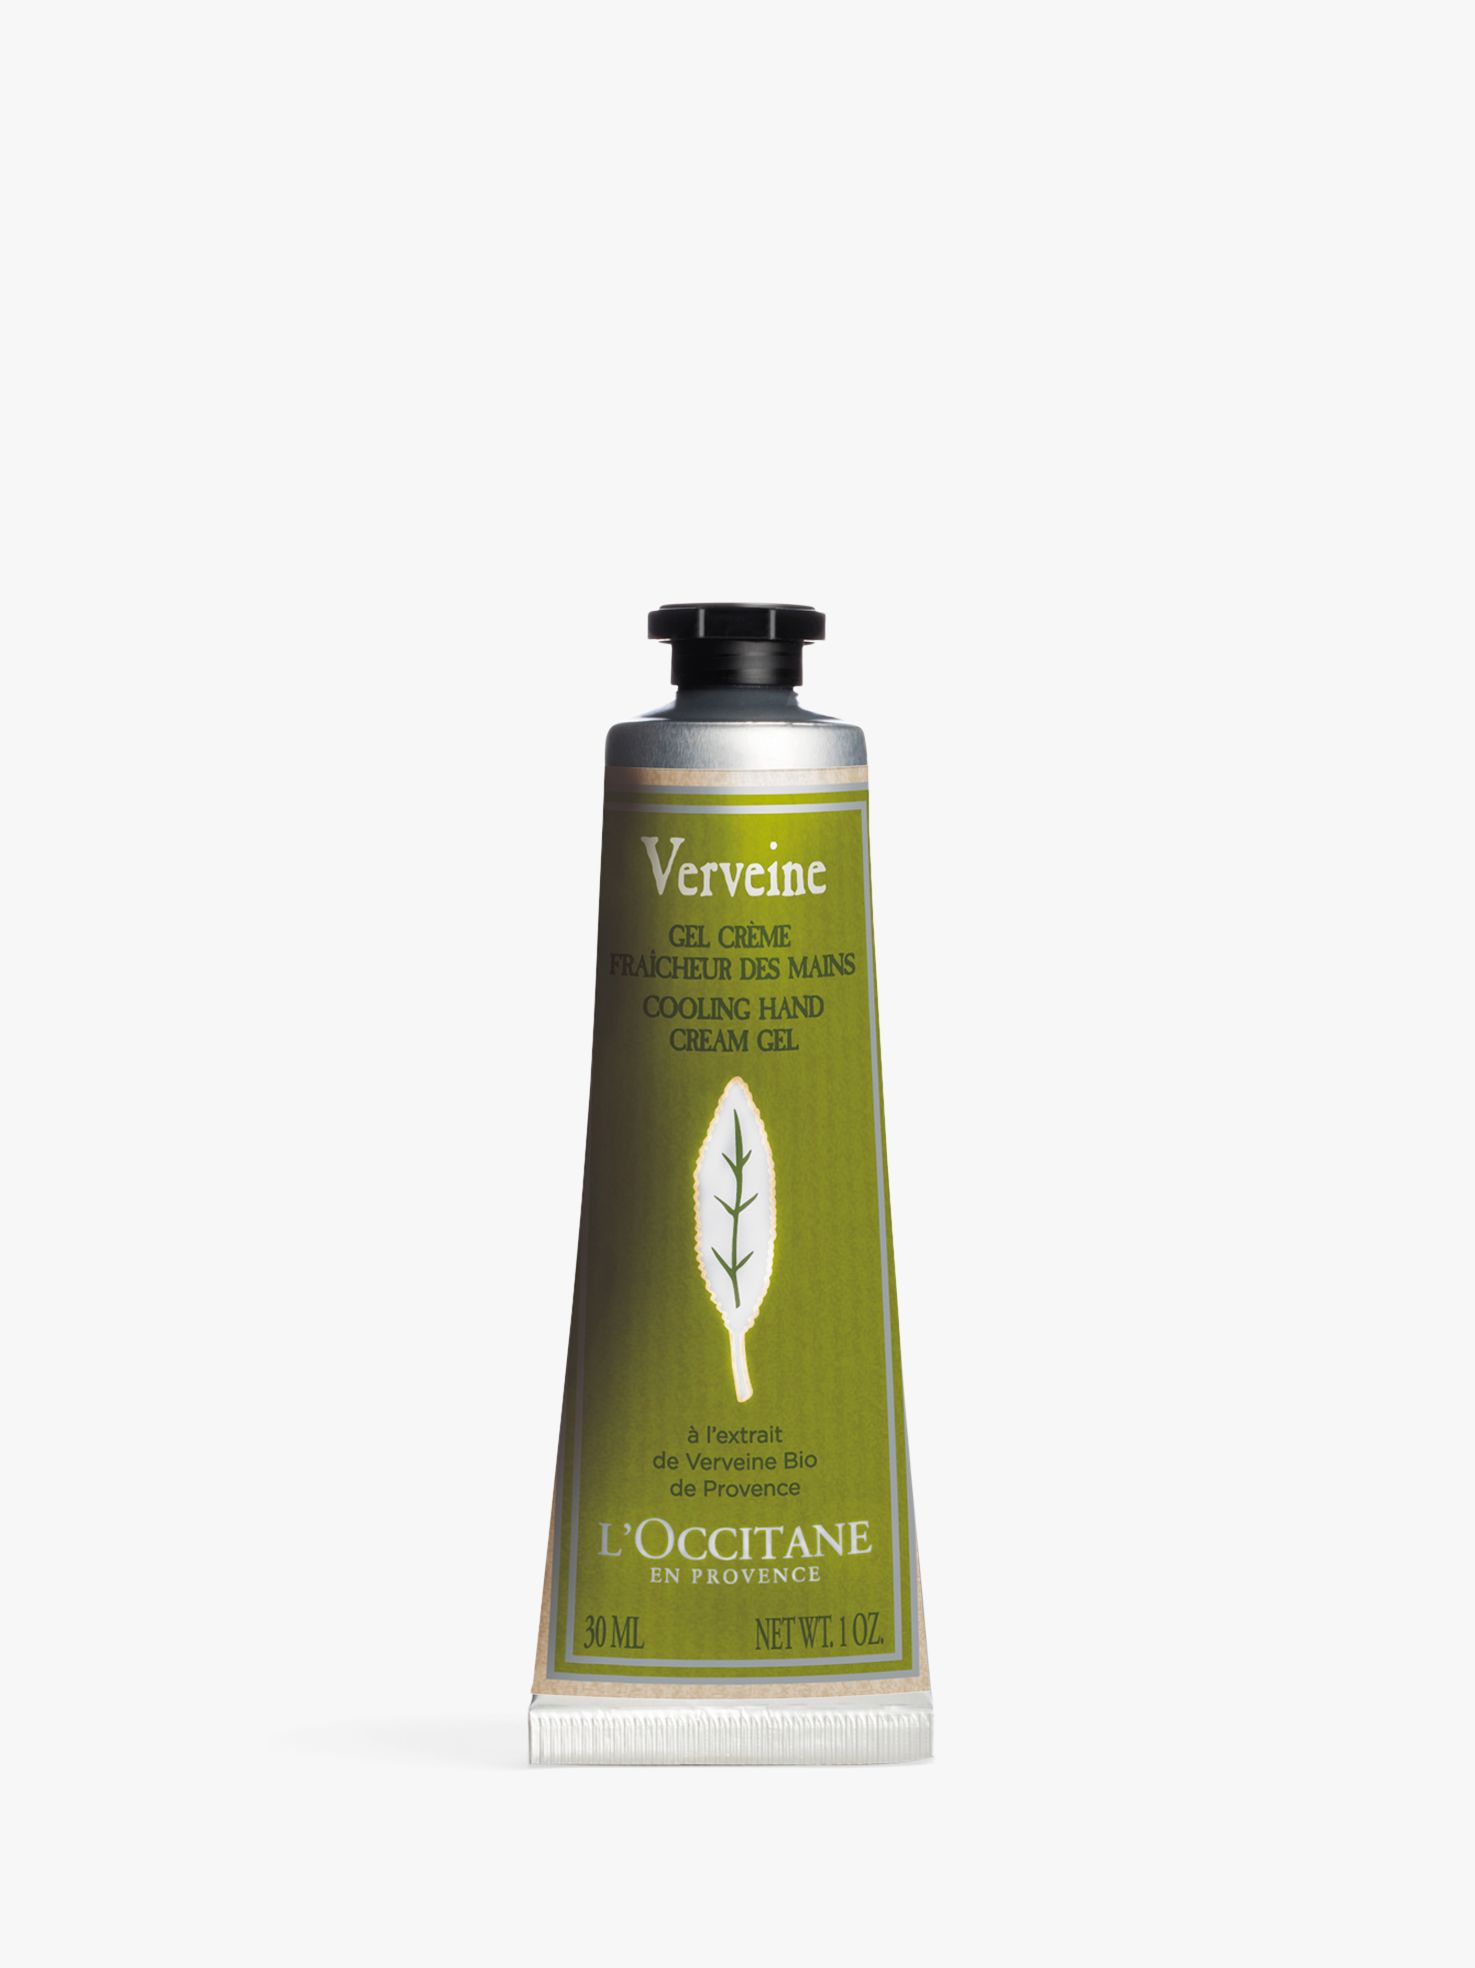 L'Occitane L'Occitane Verbena Hand Cream, 30ml